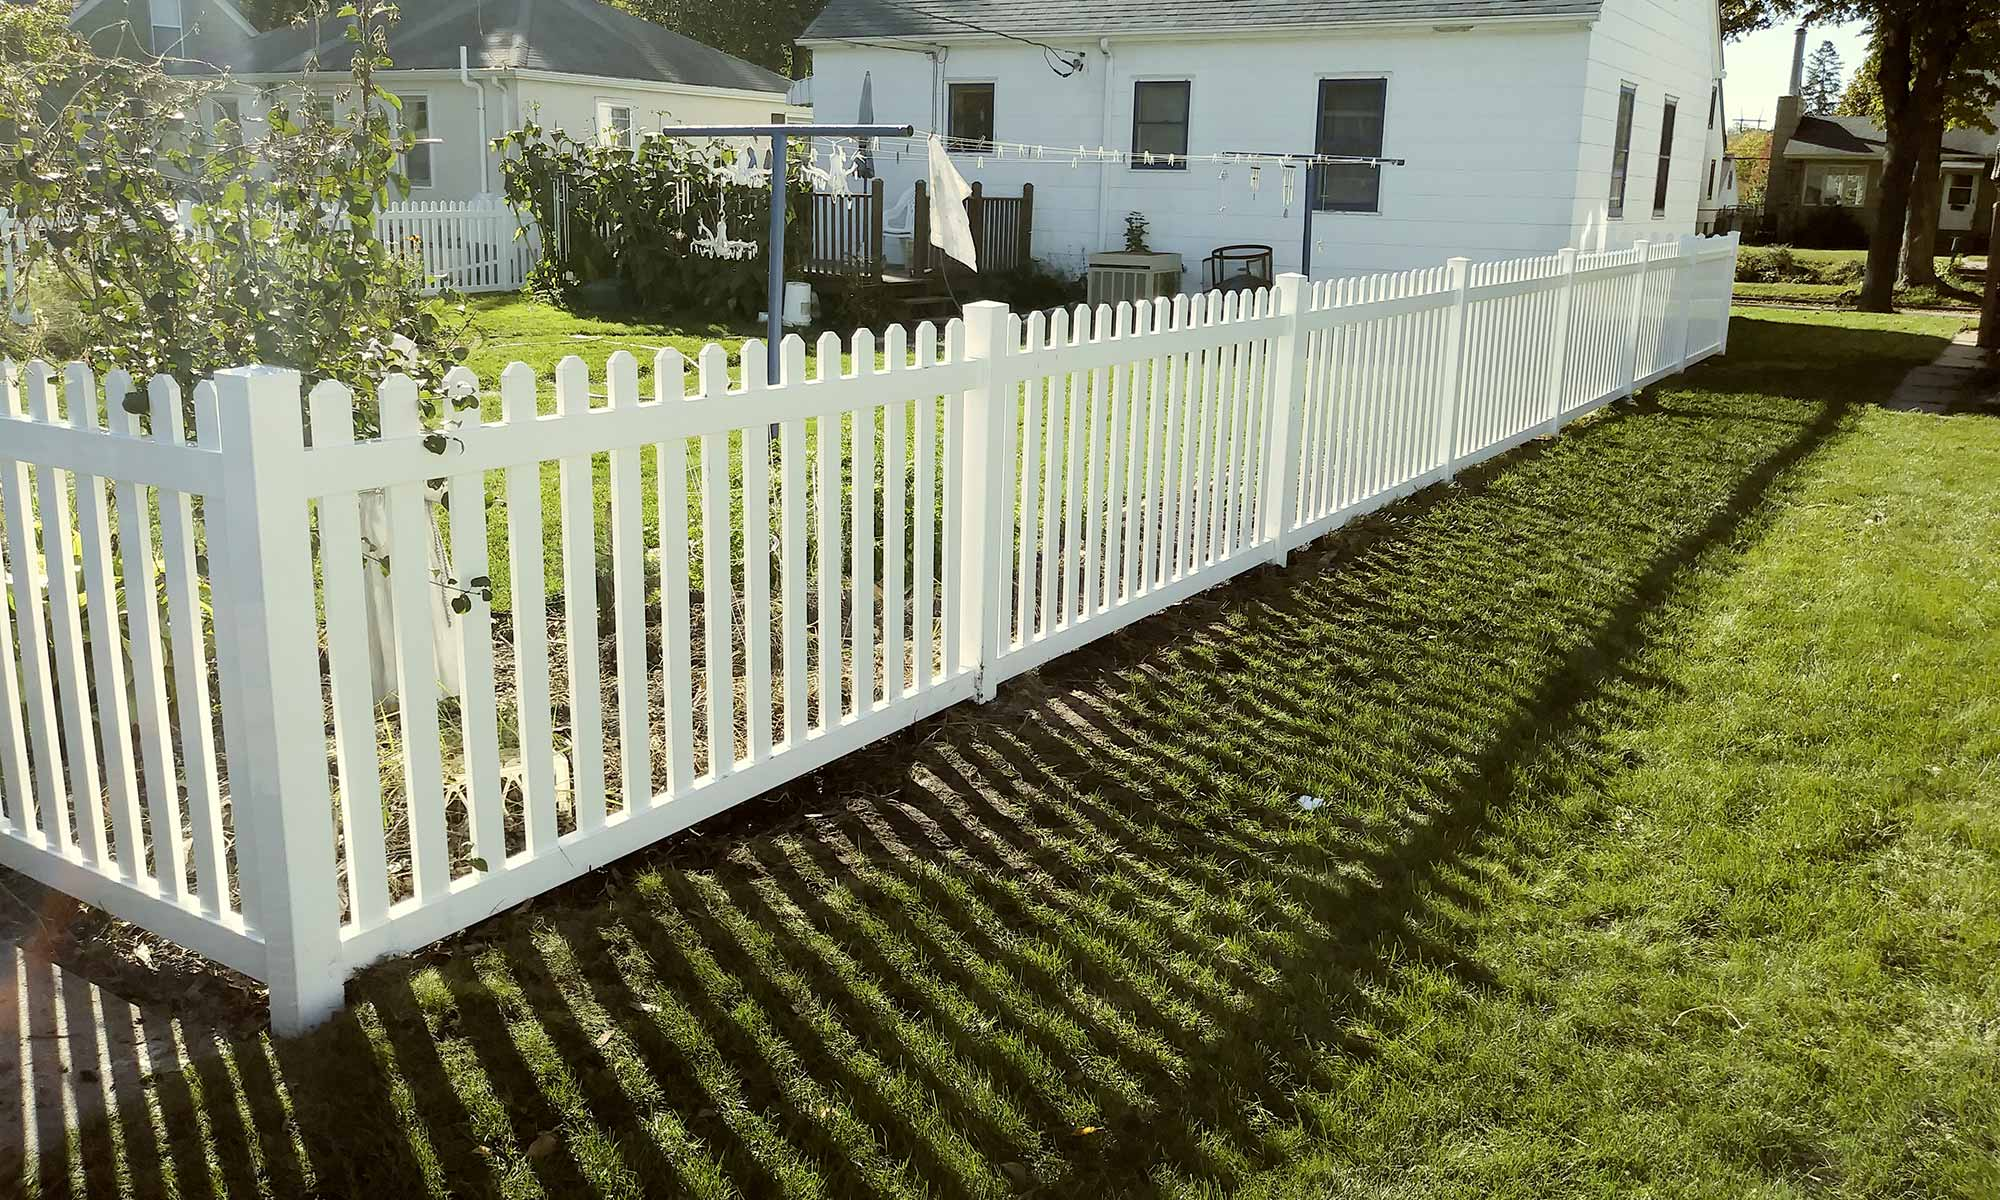 Inspirational Fence Designs To Check Out Before Making A Decision